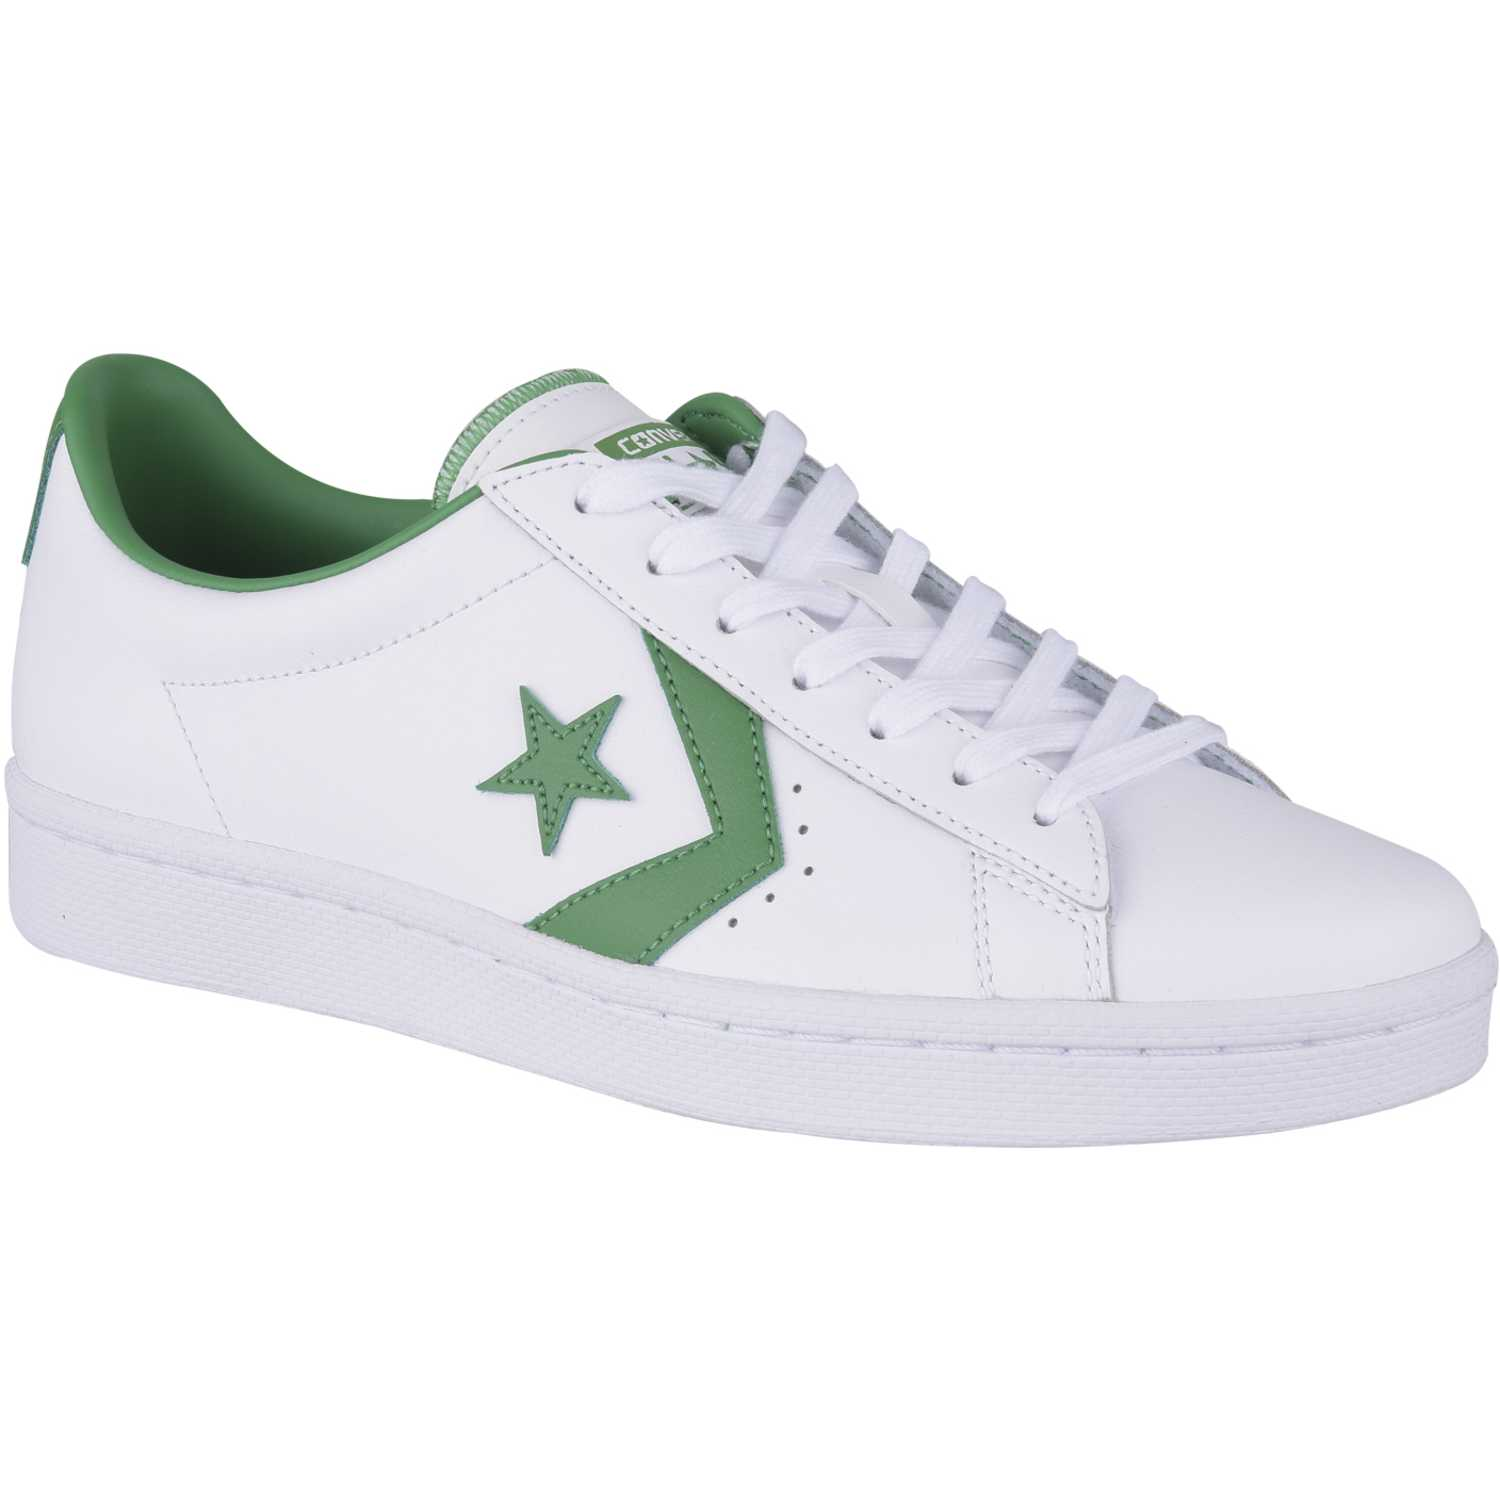 Zapatos blancos casual Converse Pro Leather para mujer